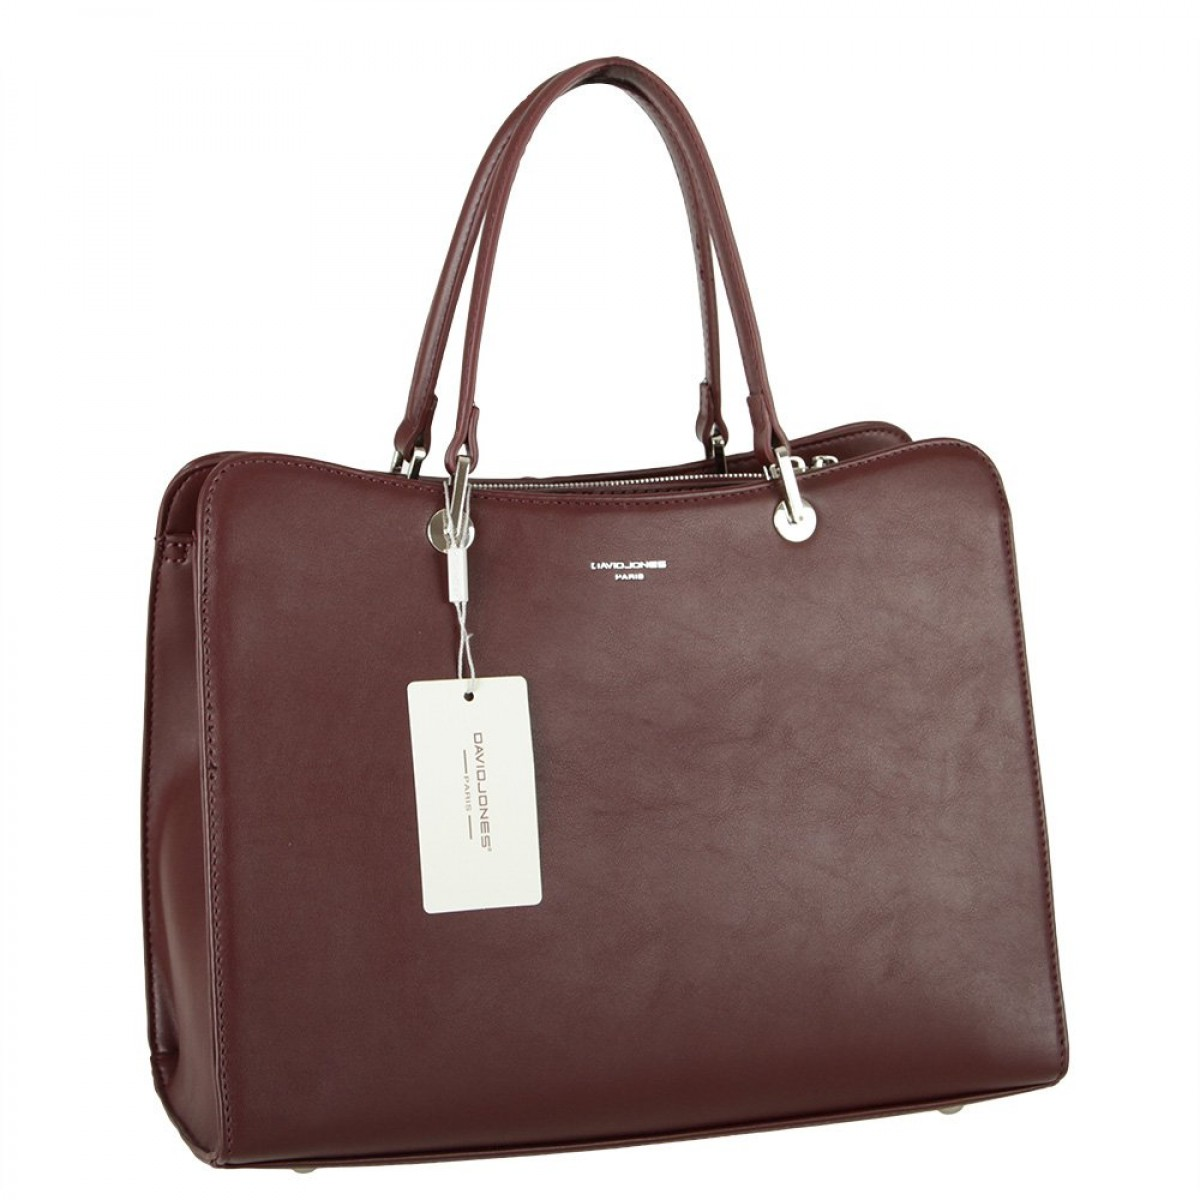 Жіноча сумка David Jones CM5815 DARK BORDEAUX